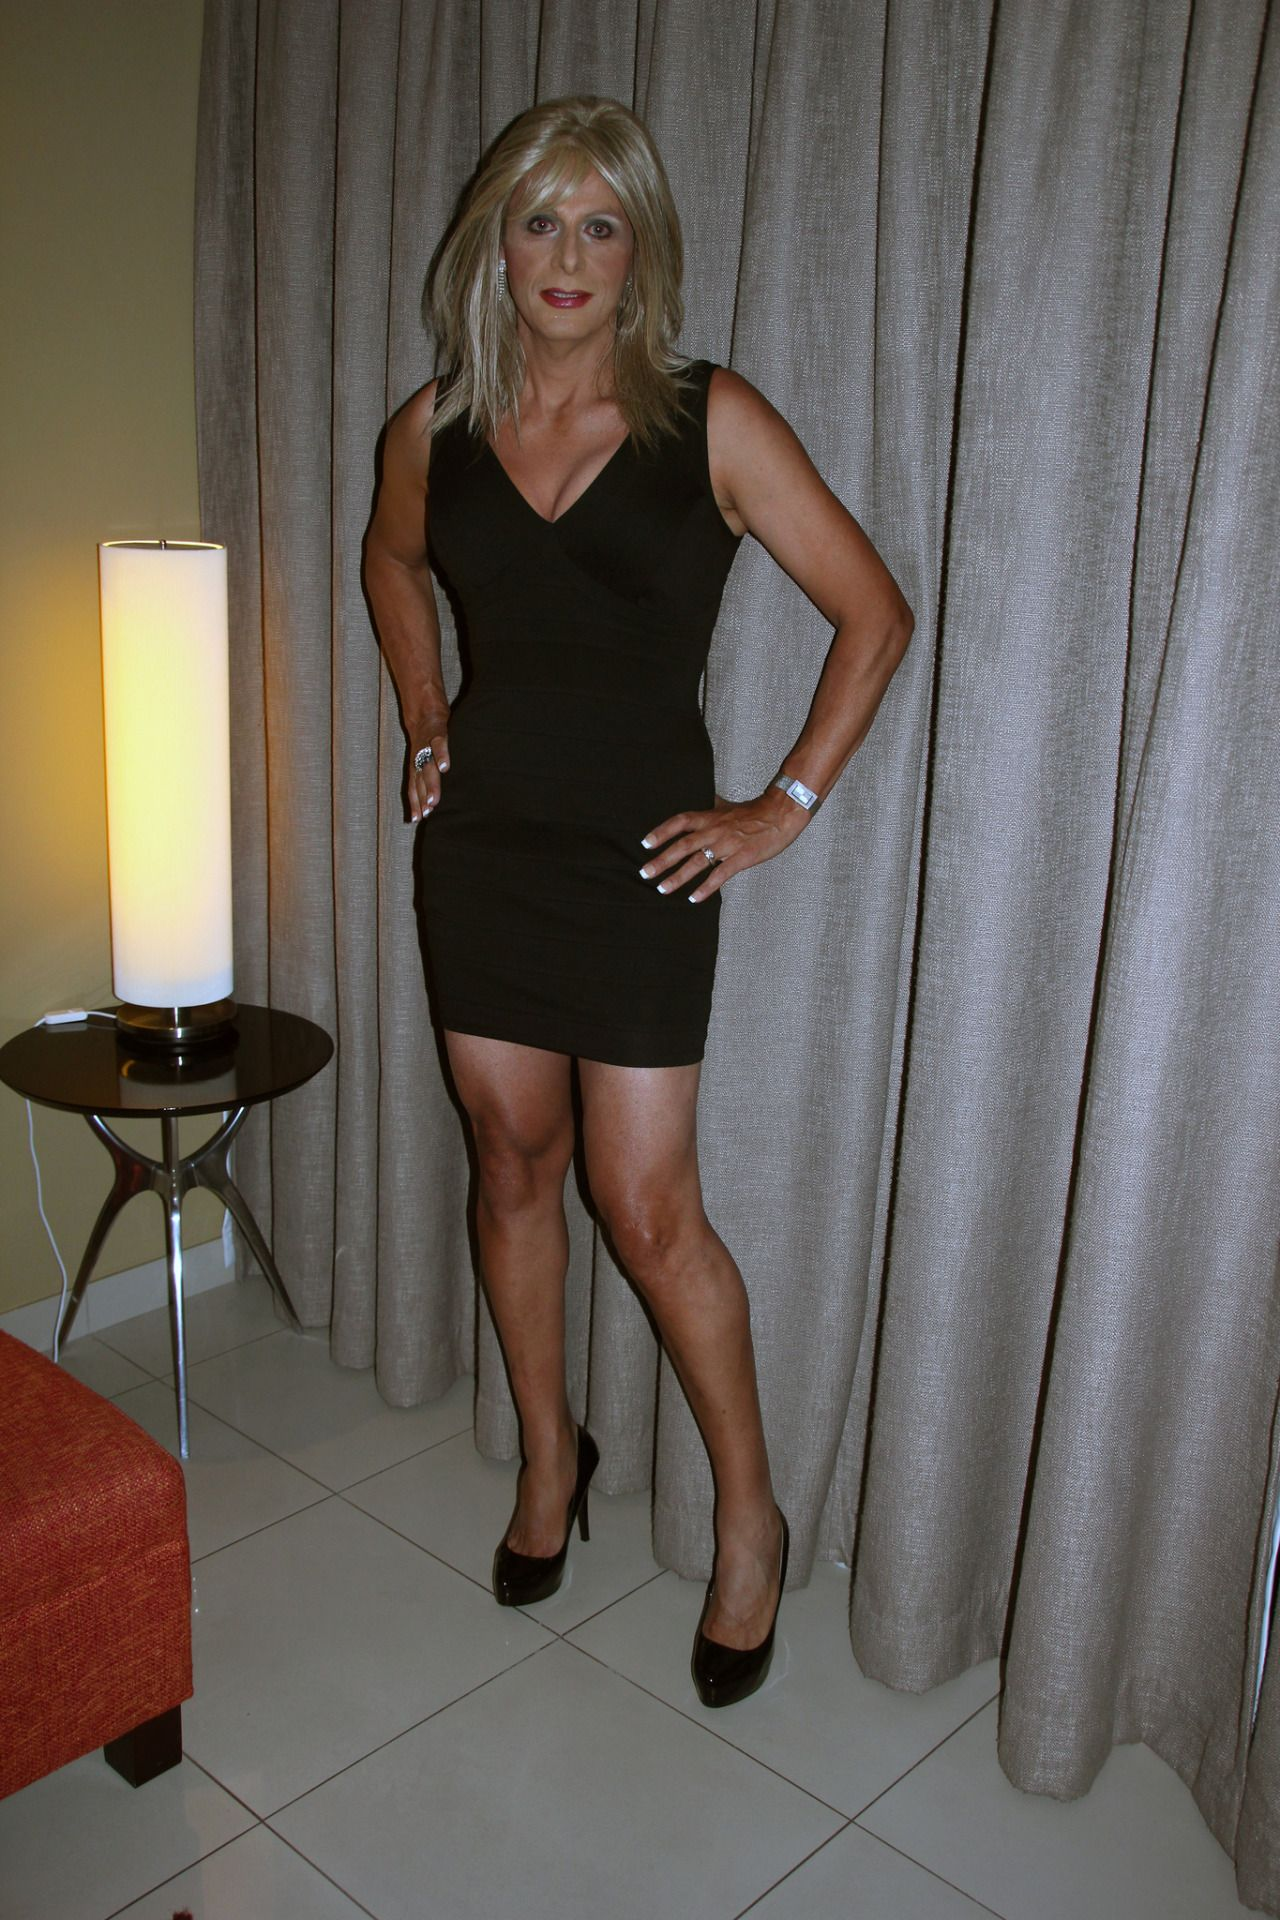 Real tranny dating in Melbourne